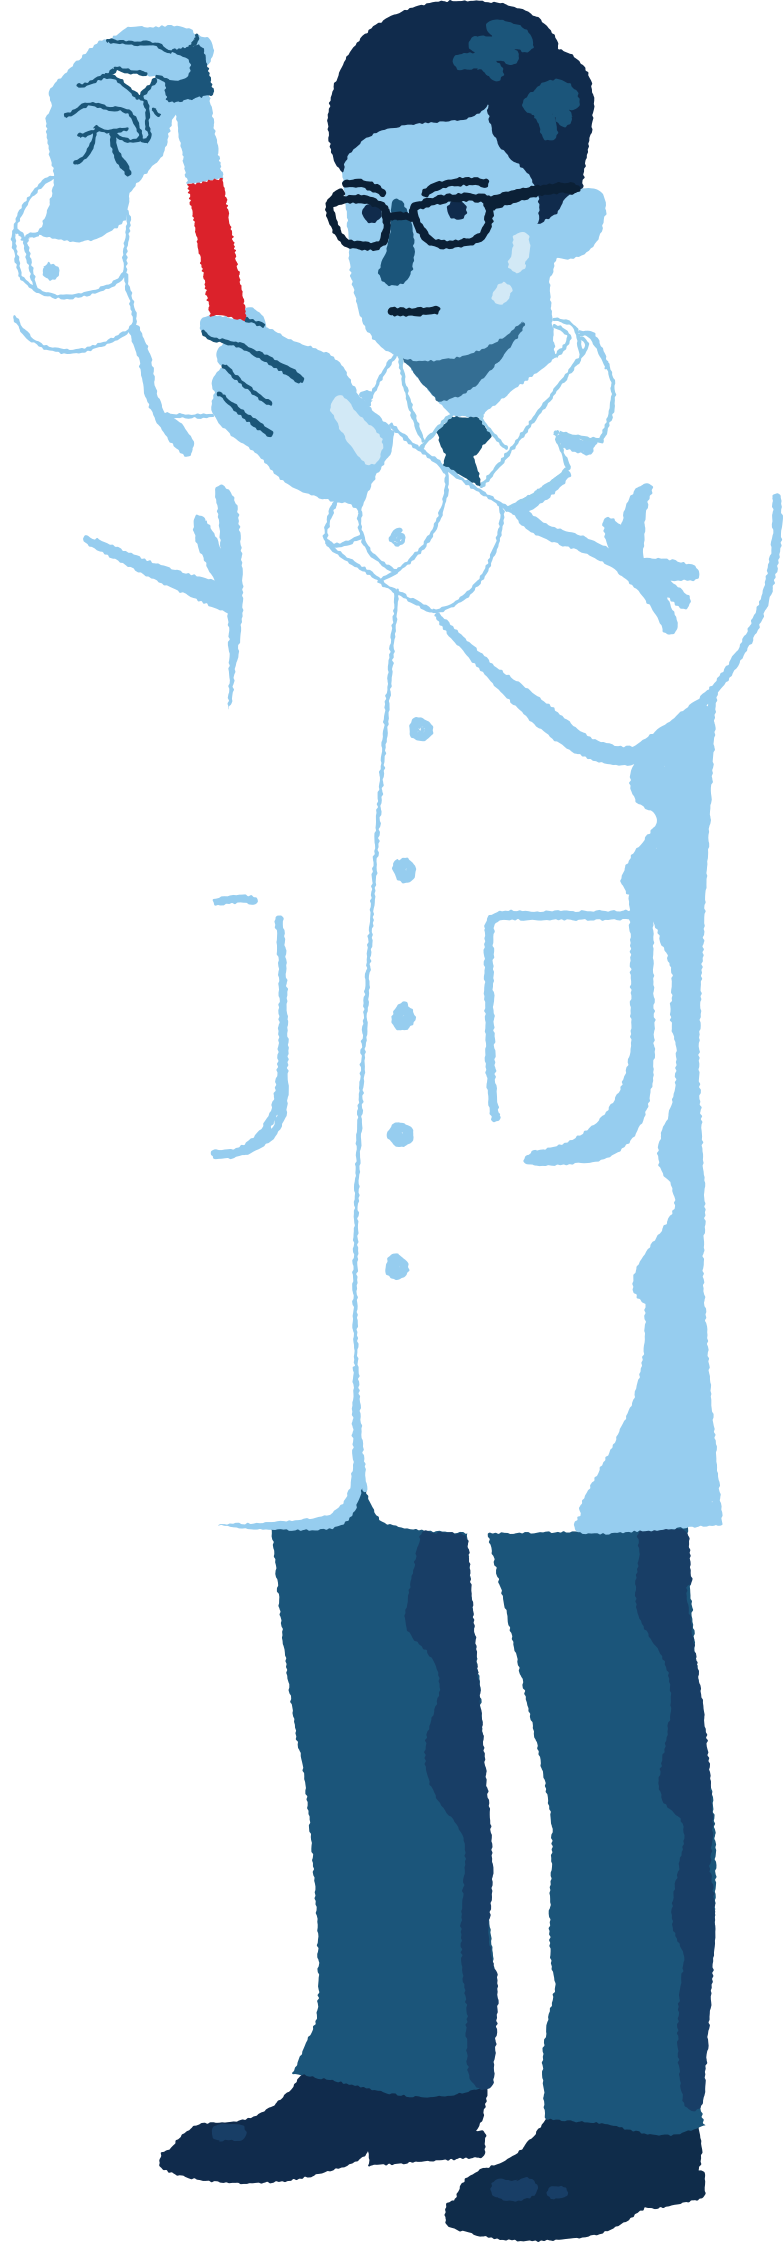 Médico Clipart illustration in PNG, SVG